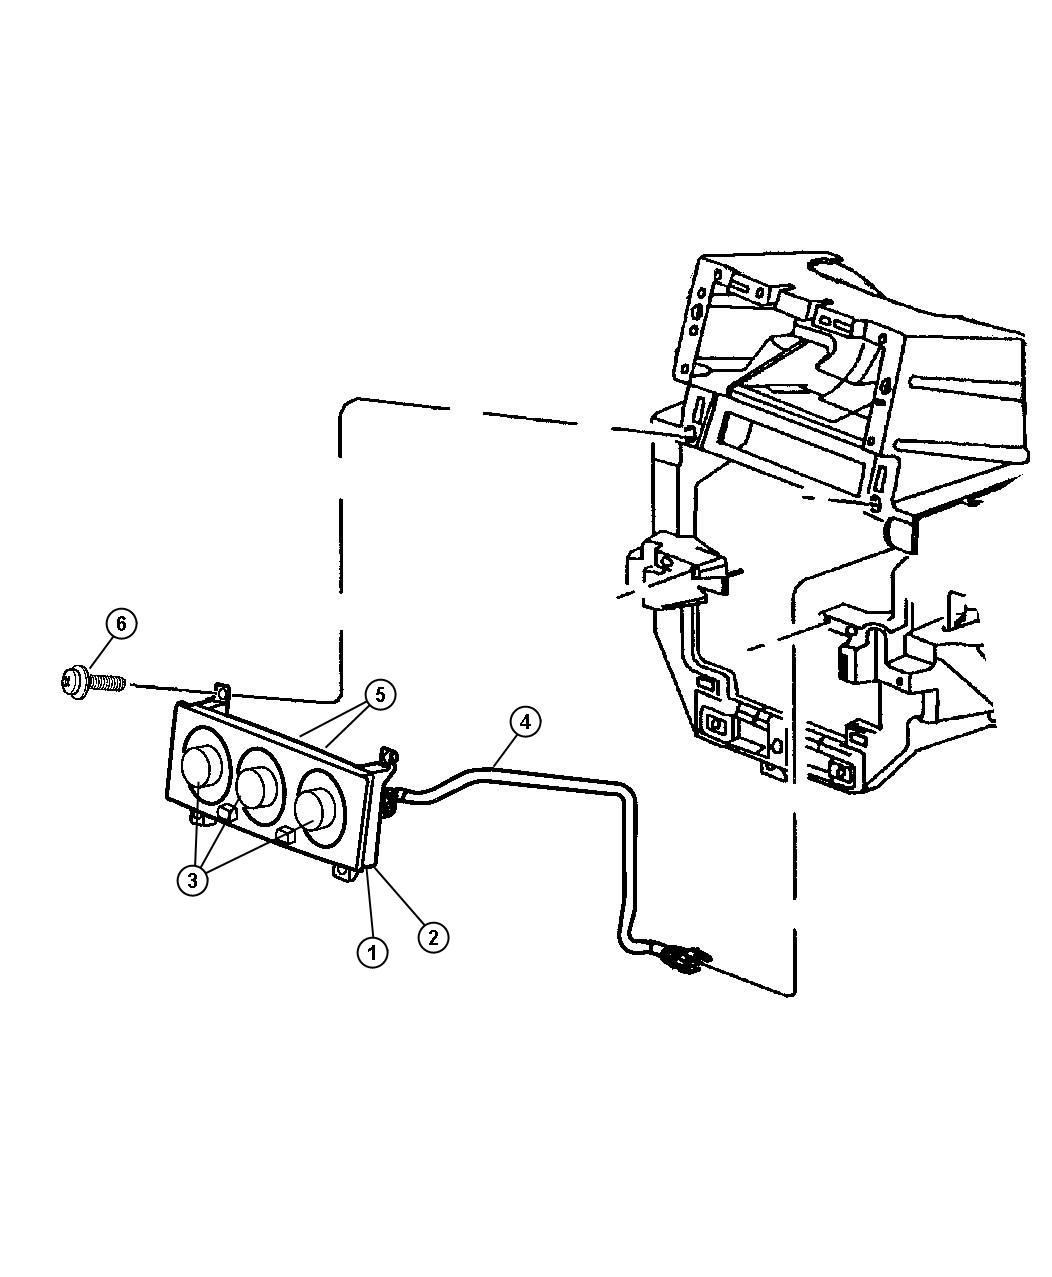 Jeep Grand Cherokee Bulb Used For Heater And A C